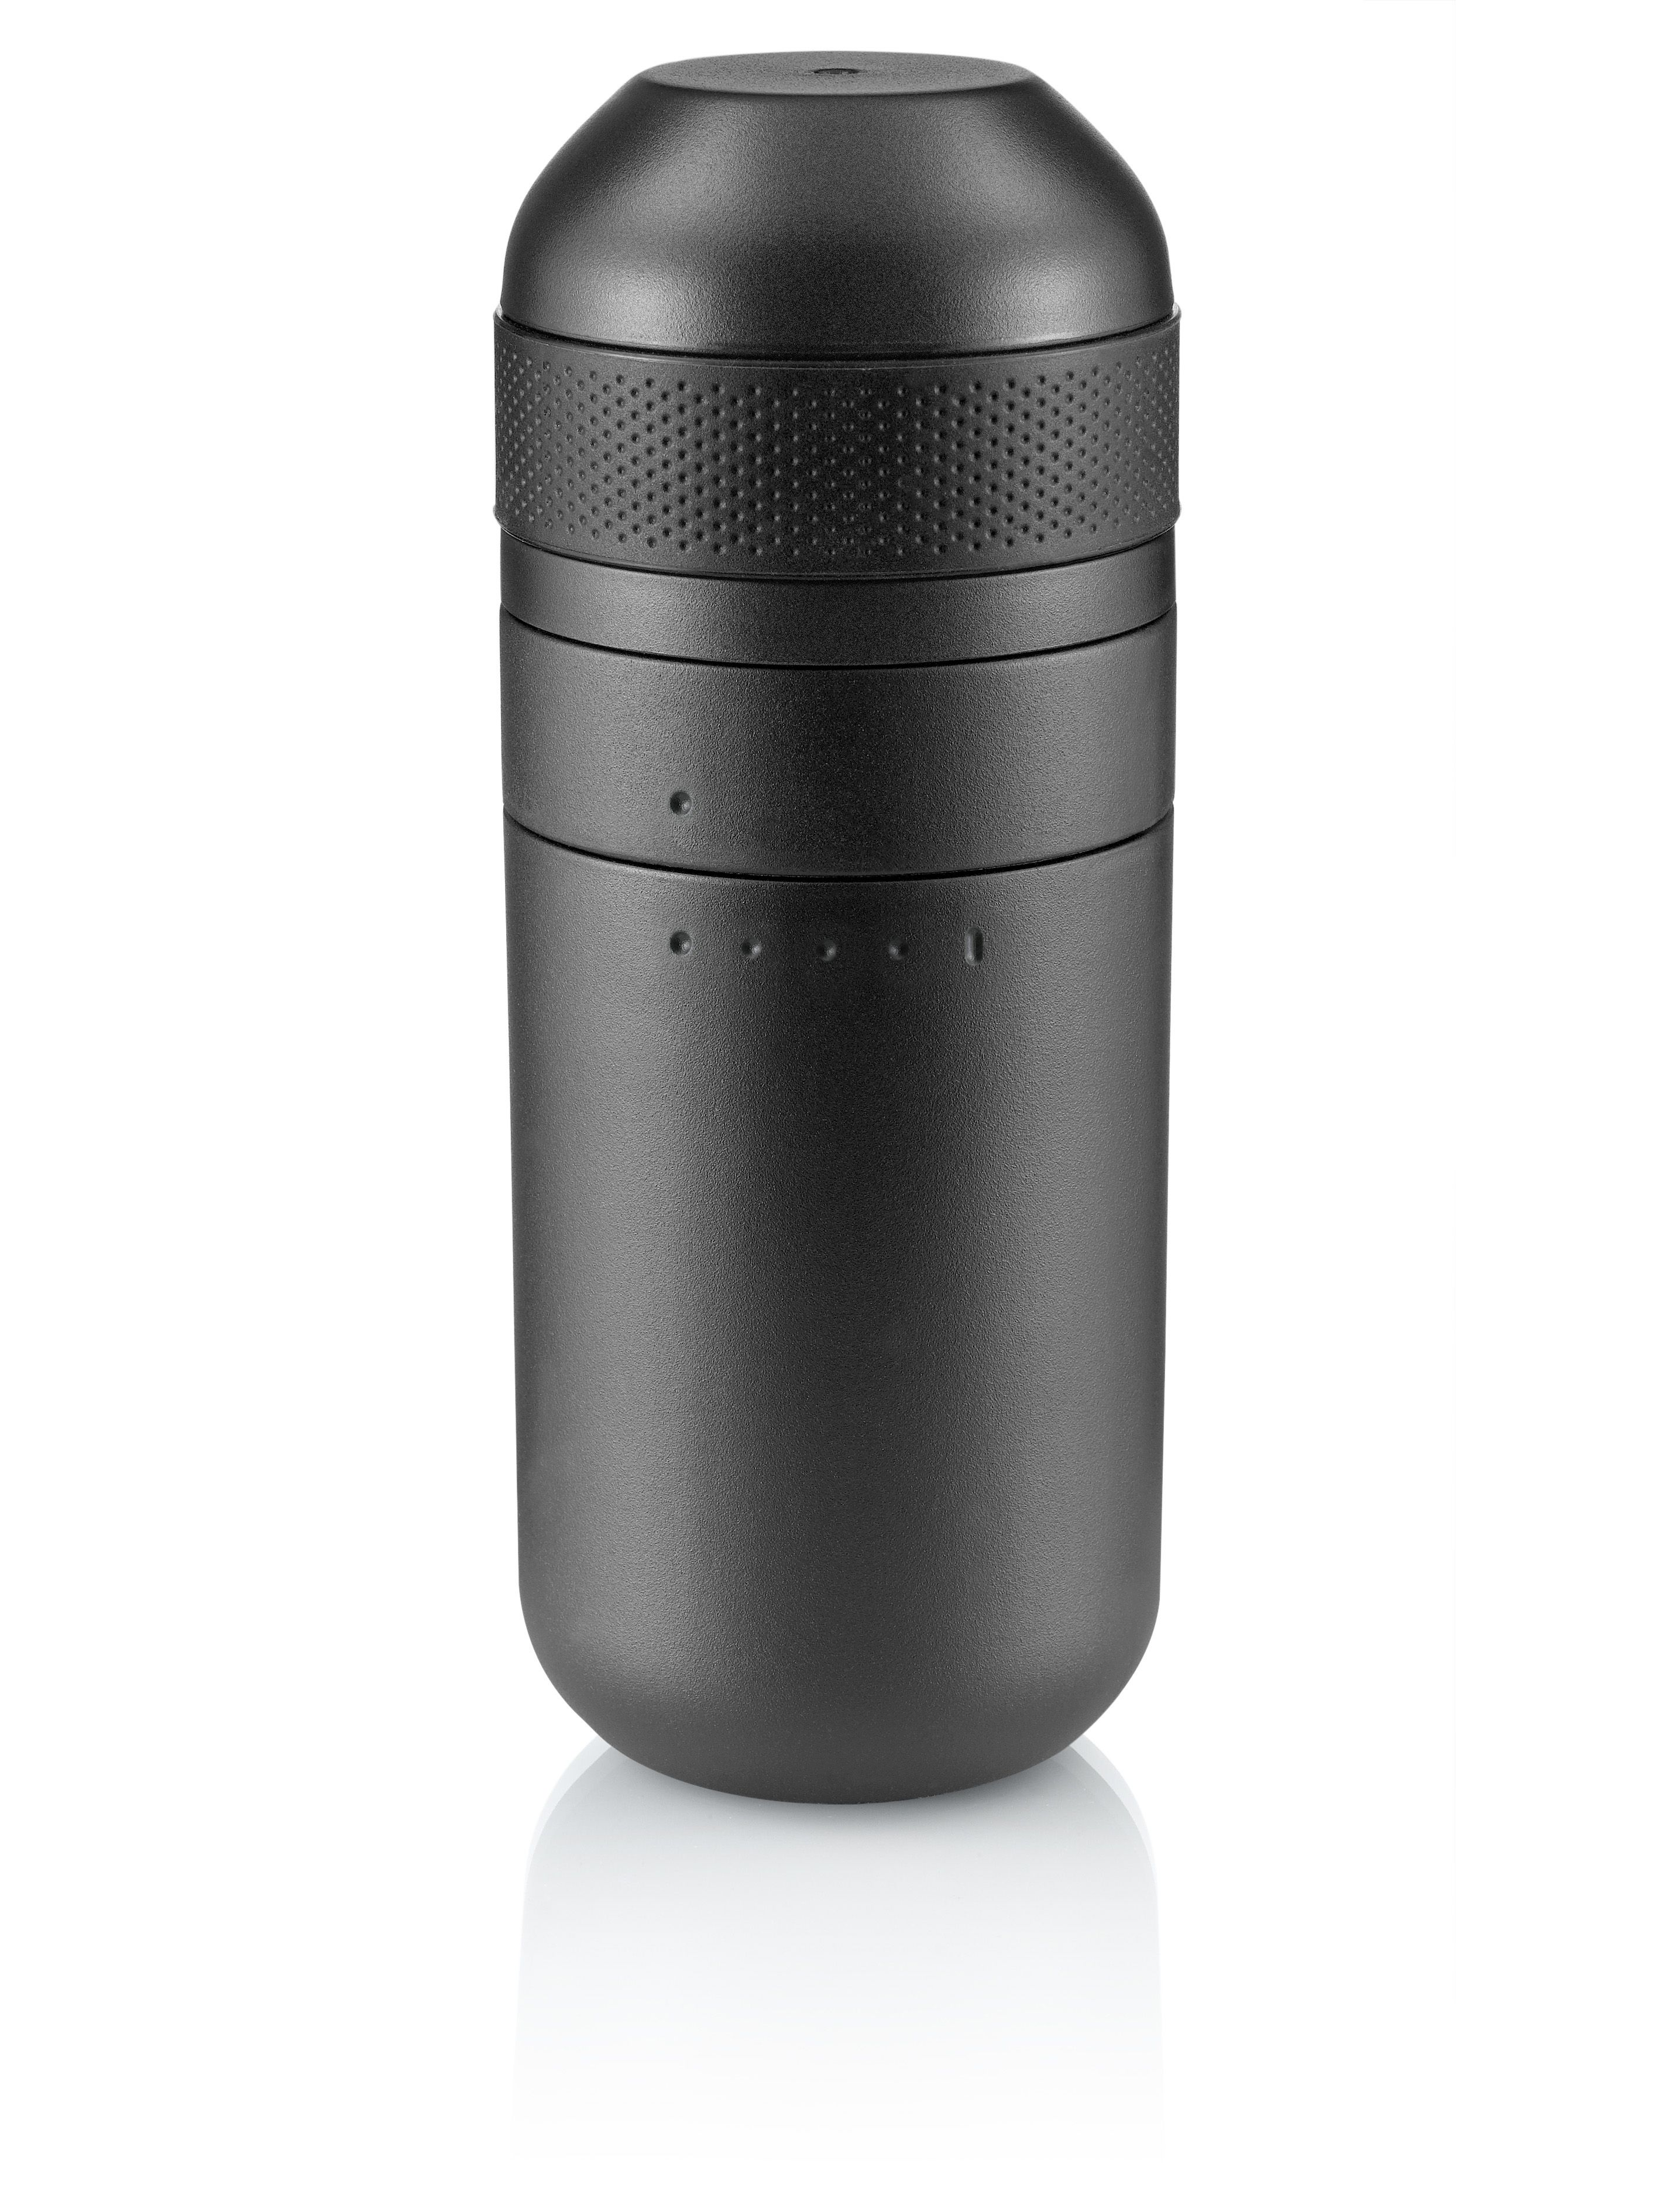 minipresso tank is a larger water container fully compatible with